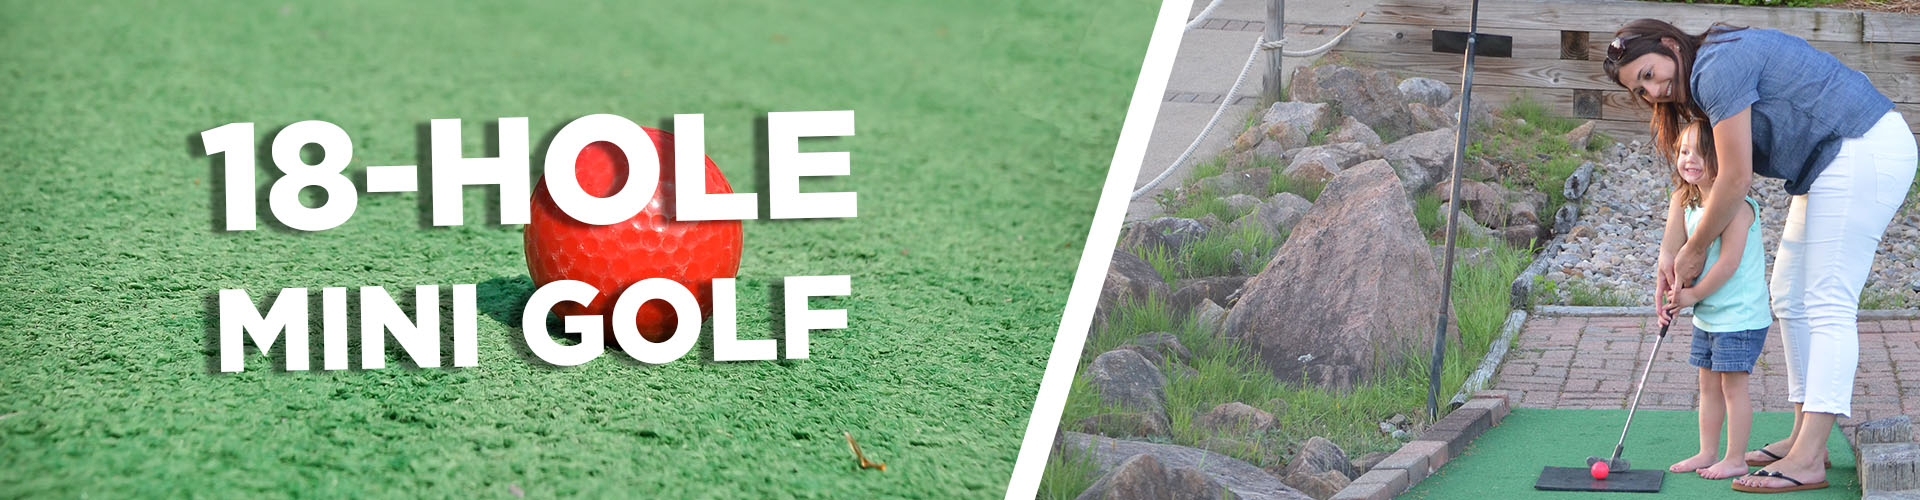 CC_MiniGolf_NEW-header-19